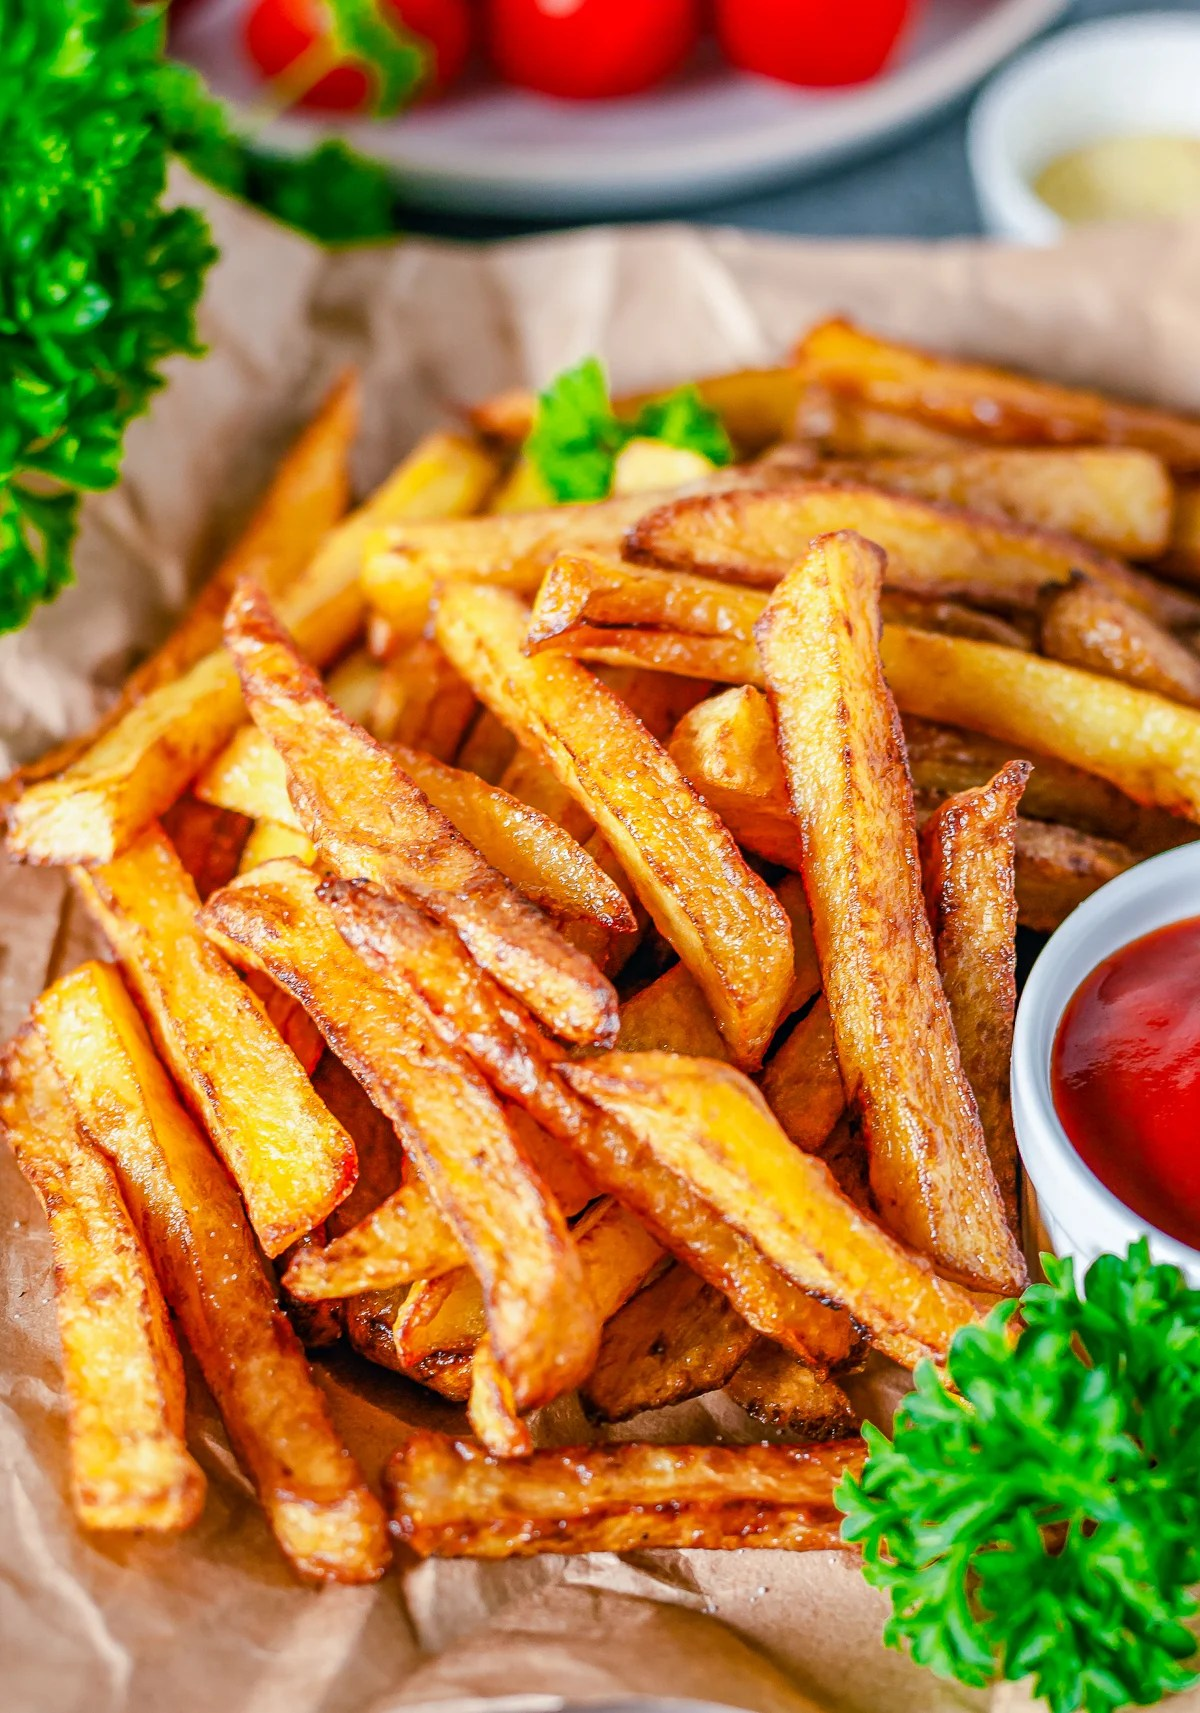 Close up of Homemade French Fries showing seasoning.